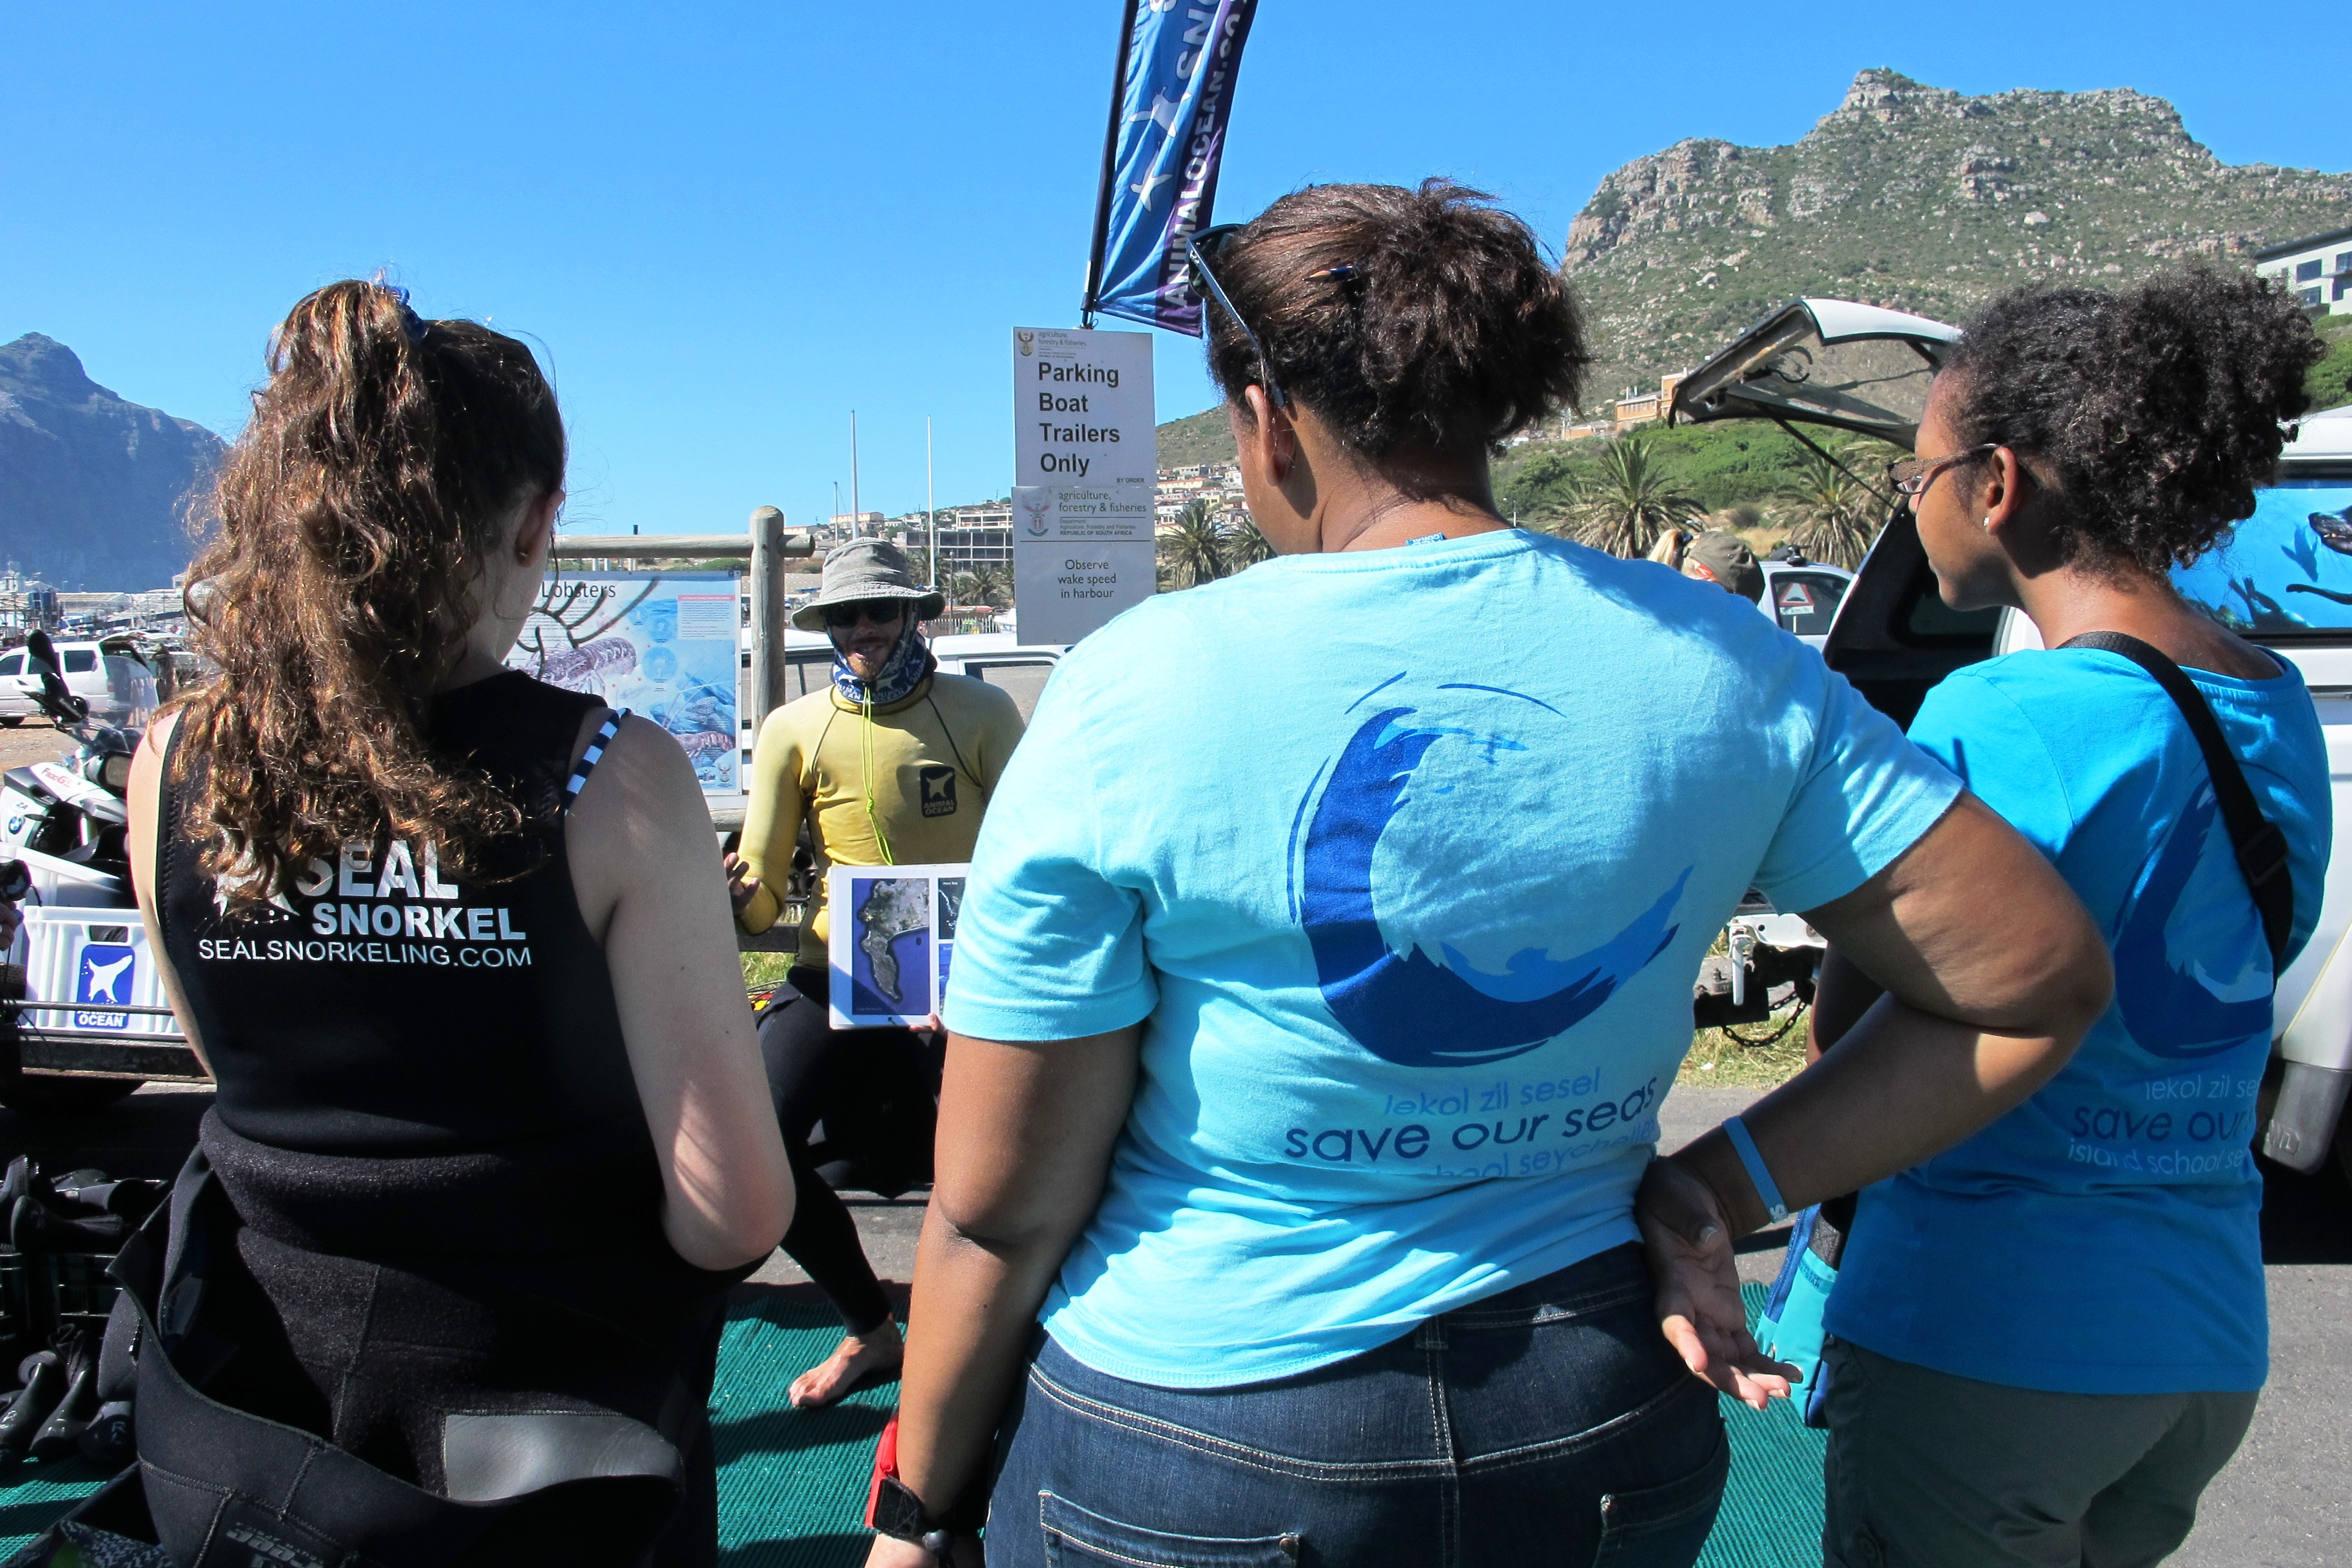 Casha, Anthea and Jaymee listen to a talk by Nathan from Animal Ocean before they begin their seal adventure.